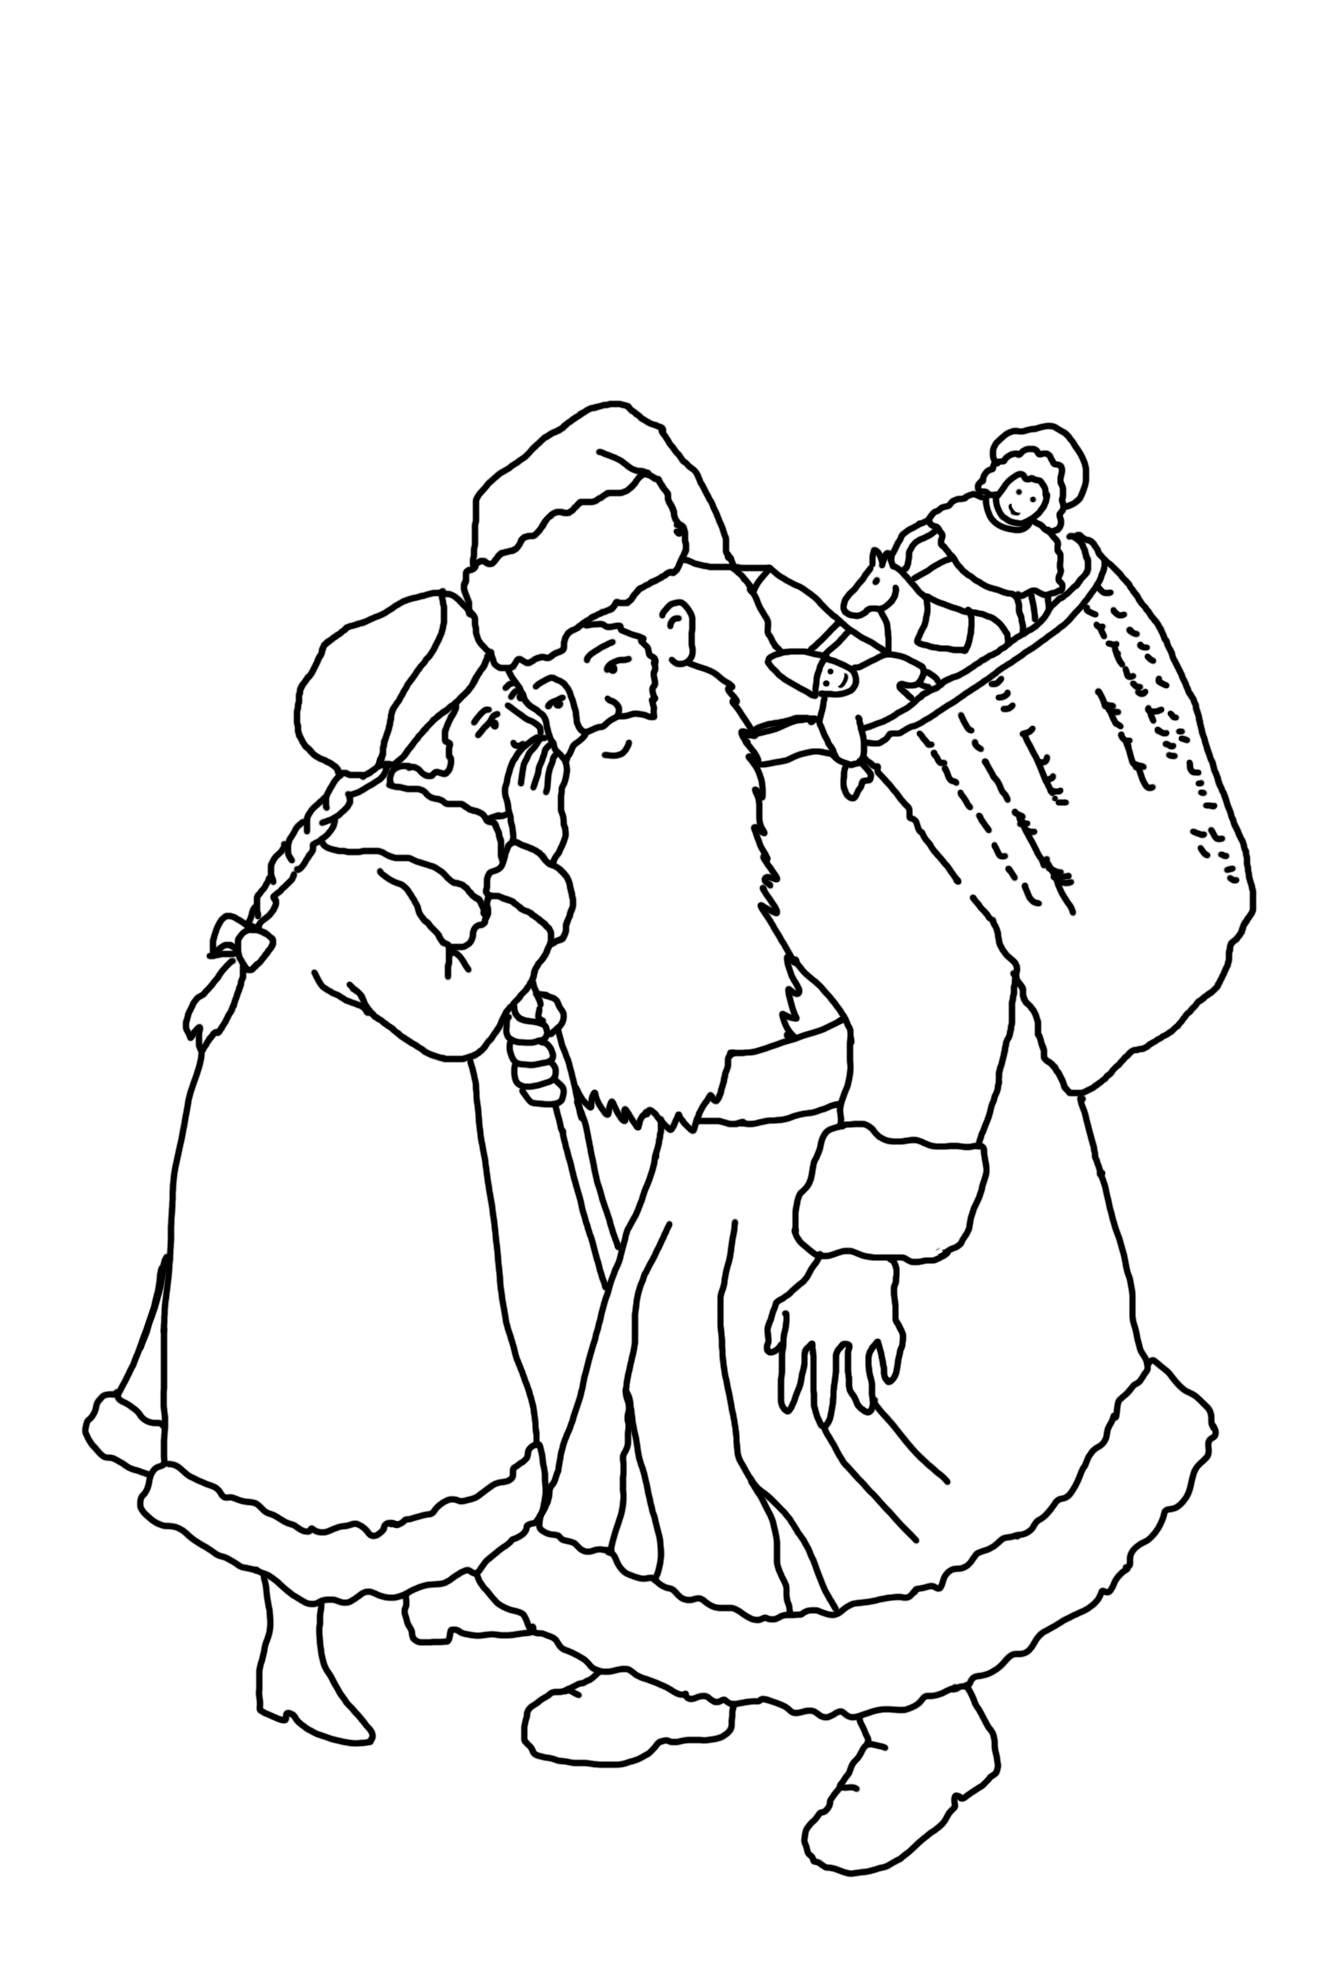 Santa Claus Outfit Coloring Pages With Christmas